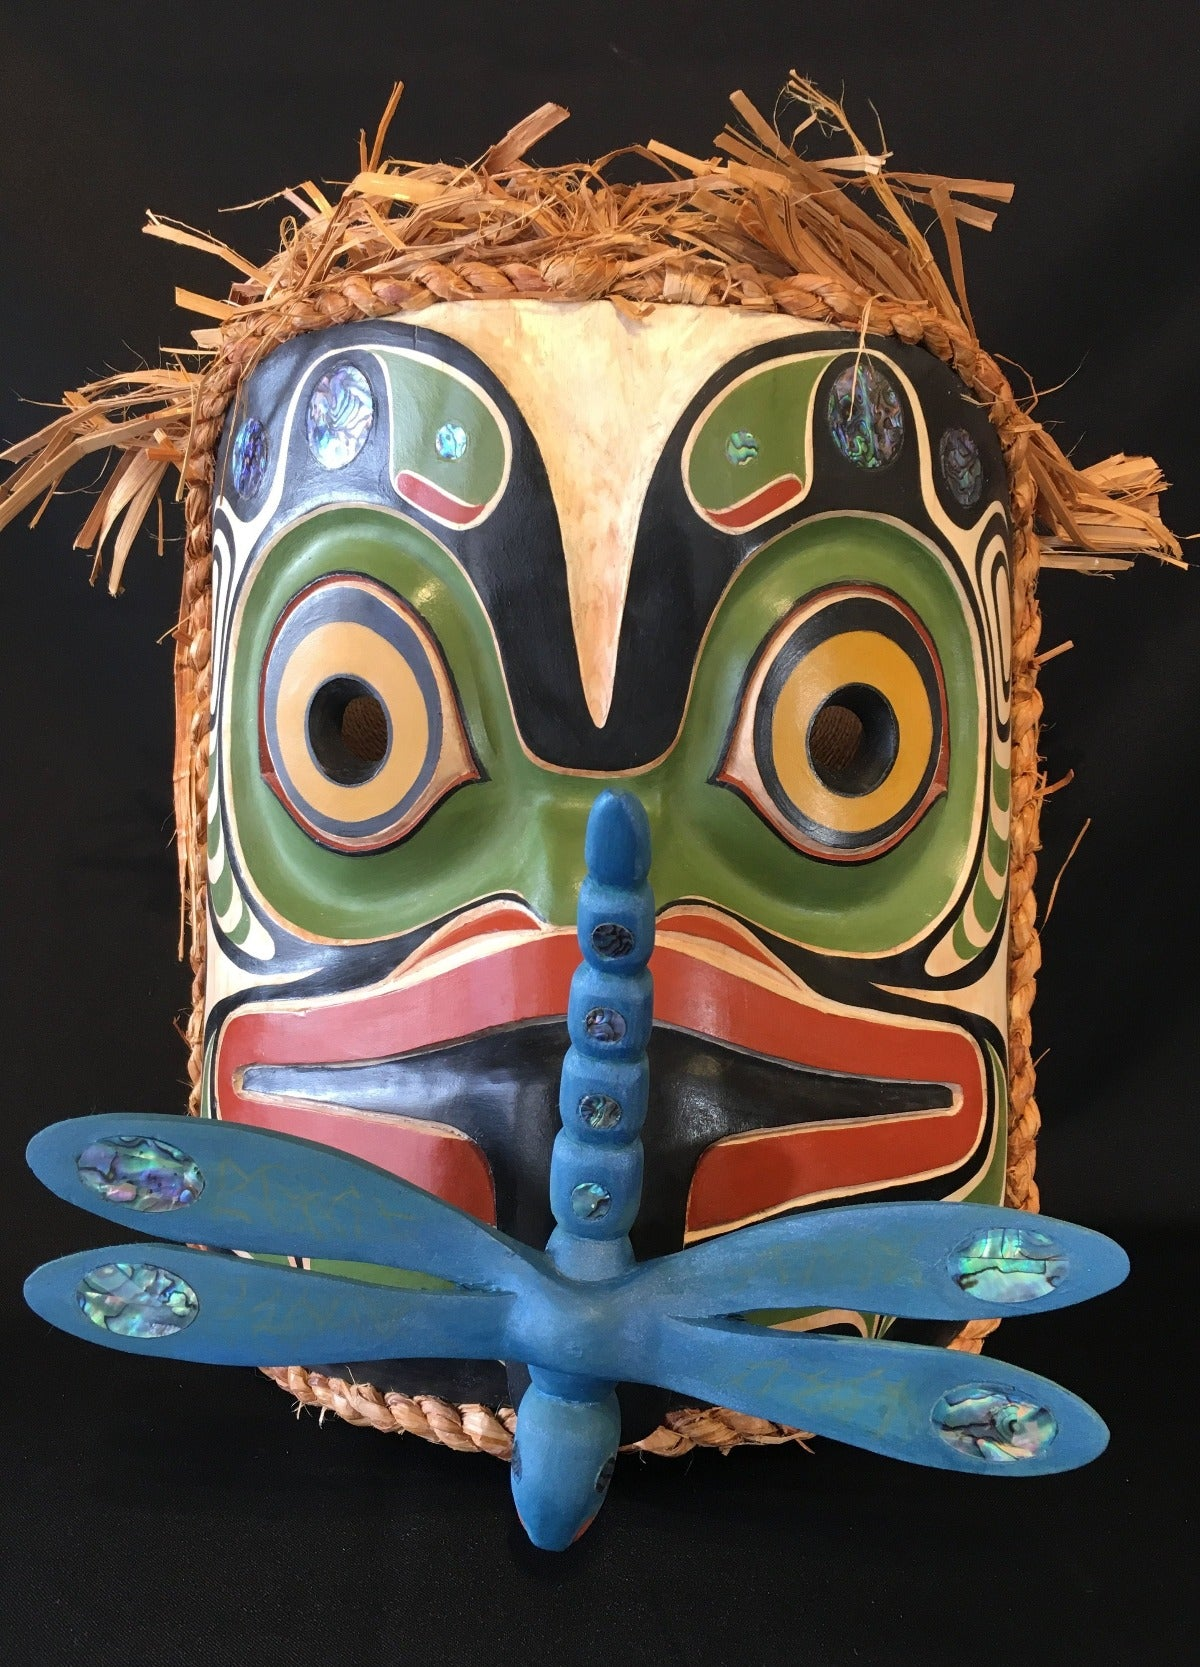 Alder Frog and Dragonfly Mask, by Ryan Morin, Pacific Coastal Mask